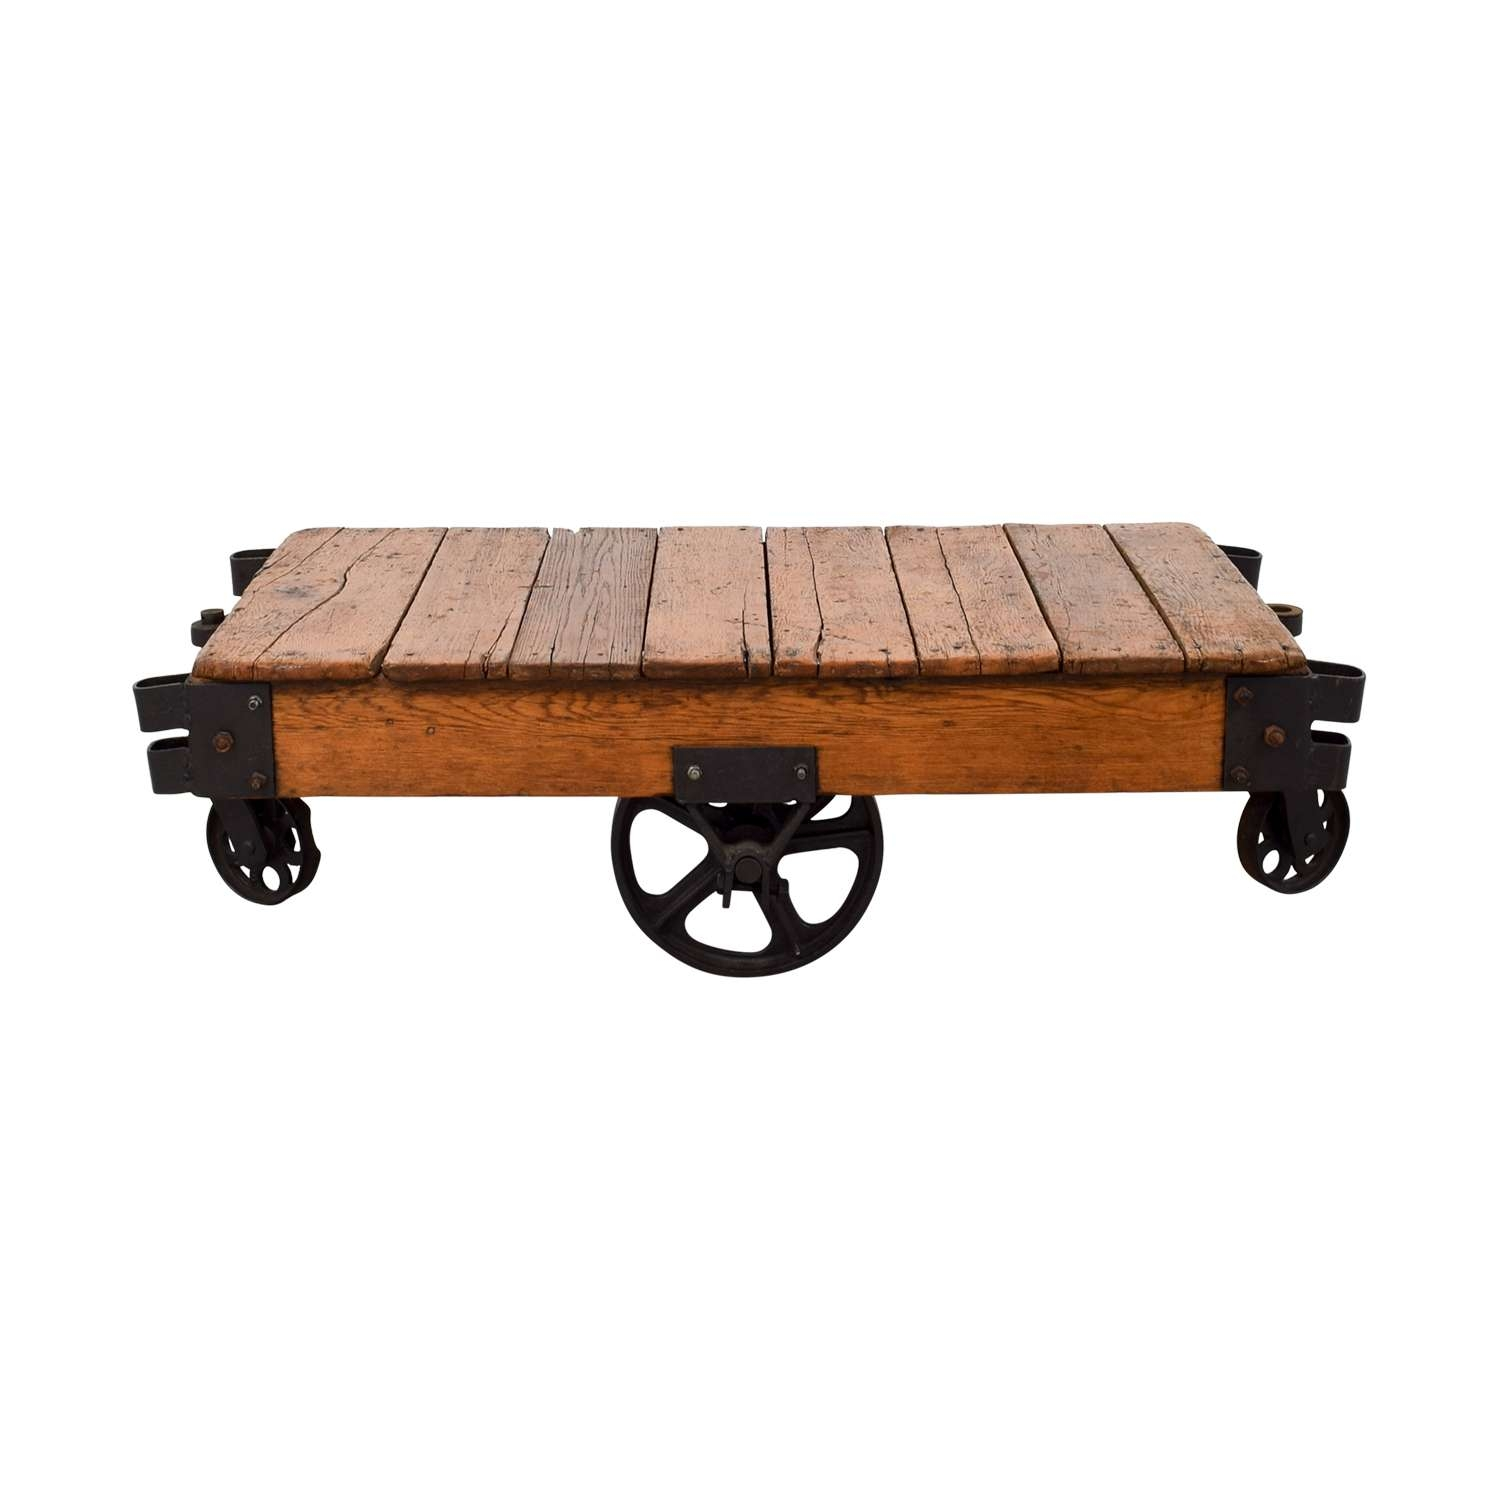 [%Most Popular Rustic Coffee Table With Wheels In 49% Off – Restoration Hardware Restoration Hardware Rustic Coffee|49% Off – Restoration Hardware Restoration Hardware Rustic Coffee Inside Current Rustic Coffee Table With Wheels%] (View 1 of 20)